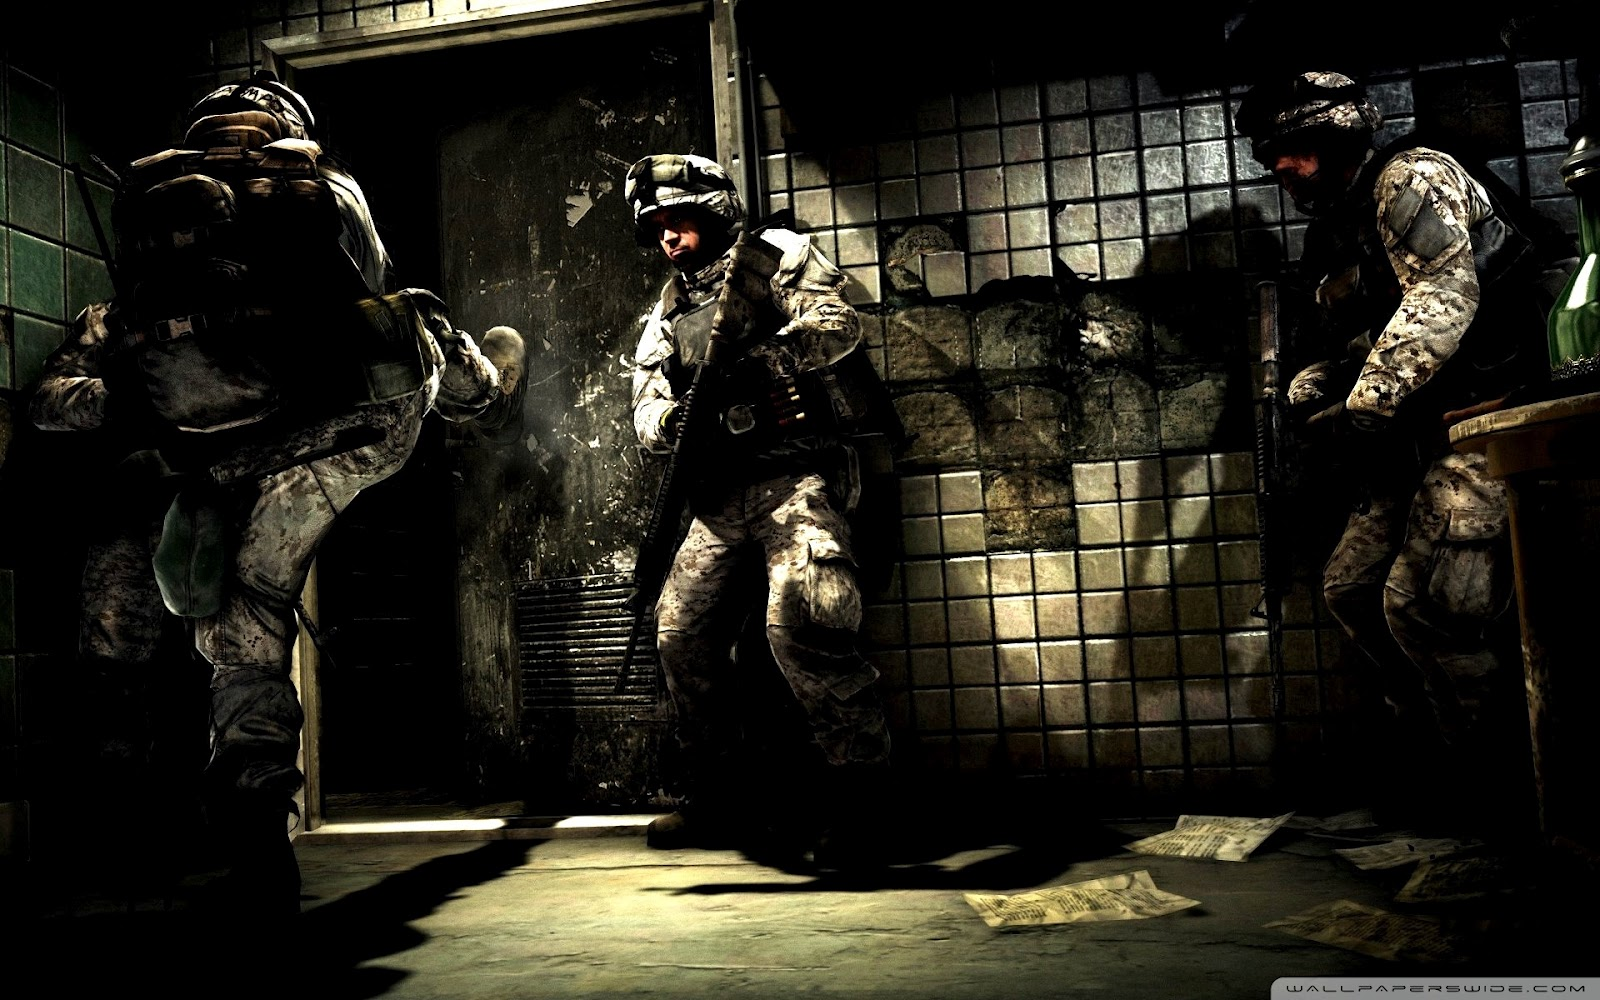 http://2.bp.blogspot.com/-hQ8FUjeC9KI/UDemmg09WiI/AAAAAAAAAYY/pT-AZkc_xy8/s1600/battlefield_3_video_game_9-wallpaper-1920x1200.jpg